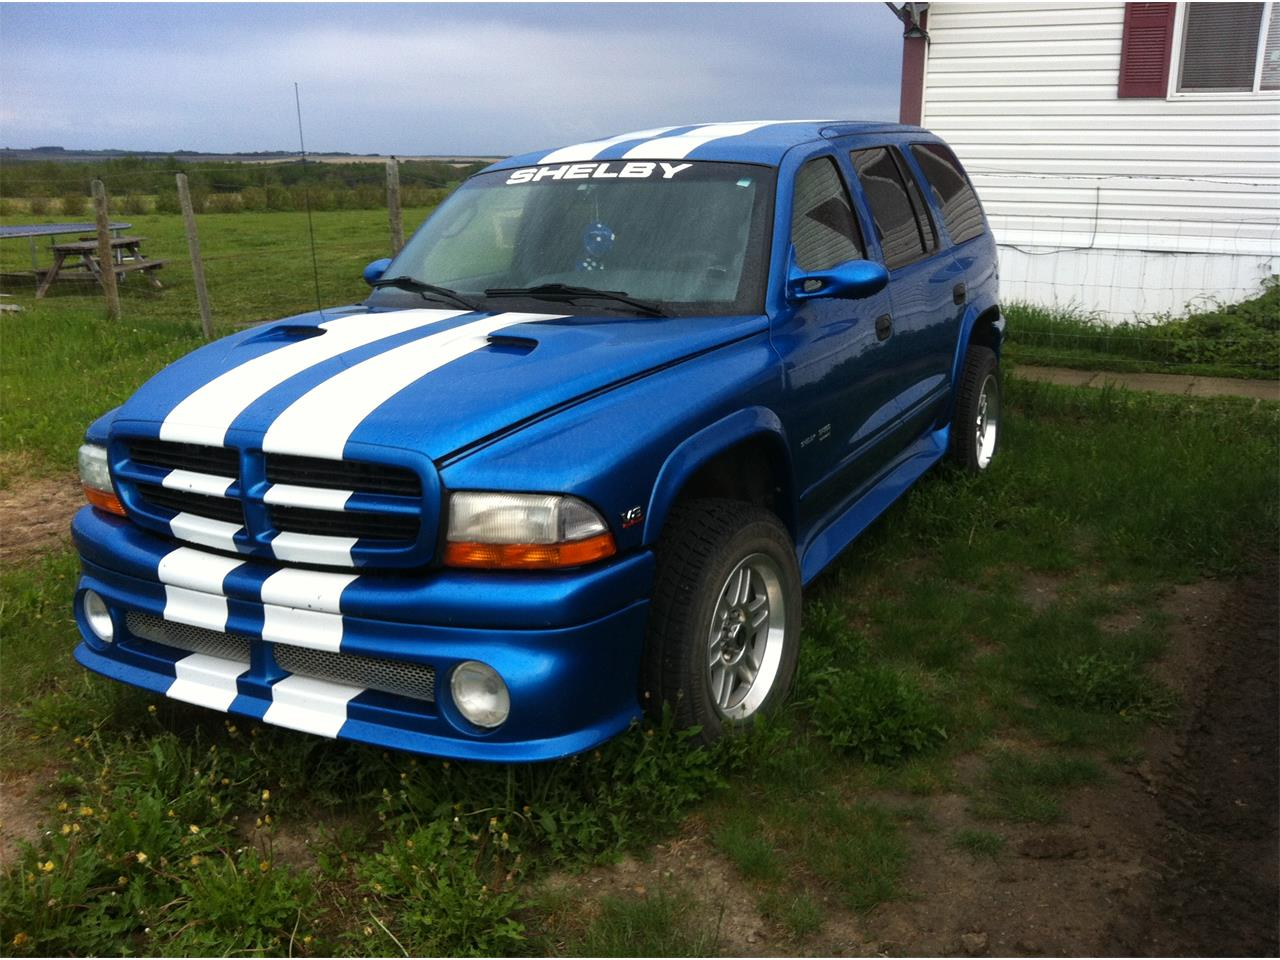 Large Picture of '99 Shelby Durango Shelby SP360 located in Grande Prairie Alberta - D6I4